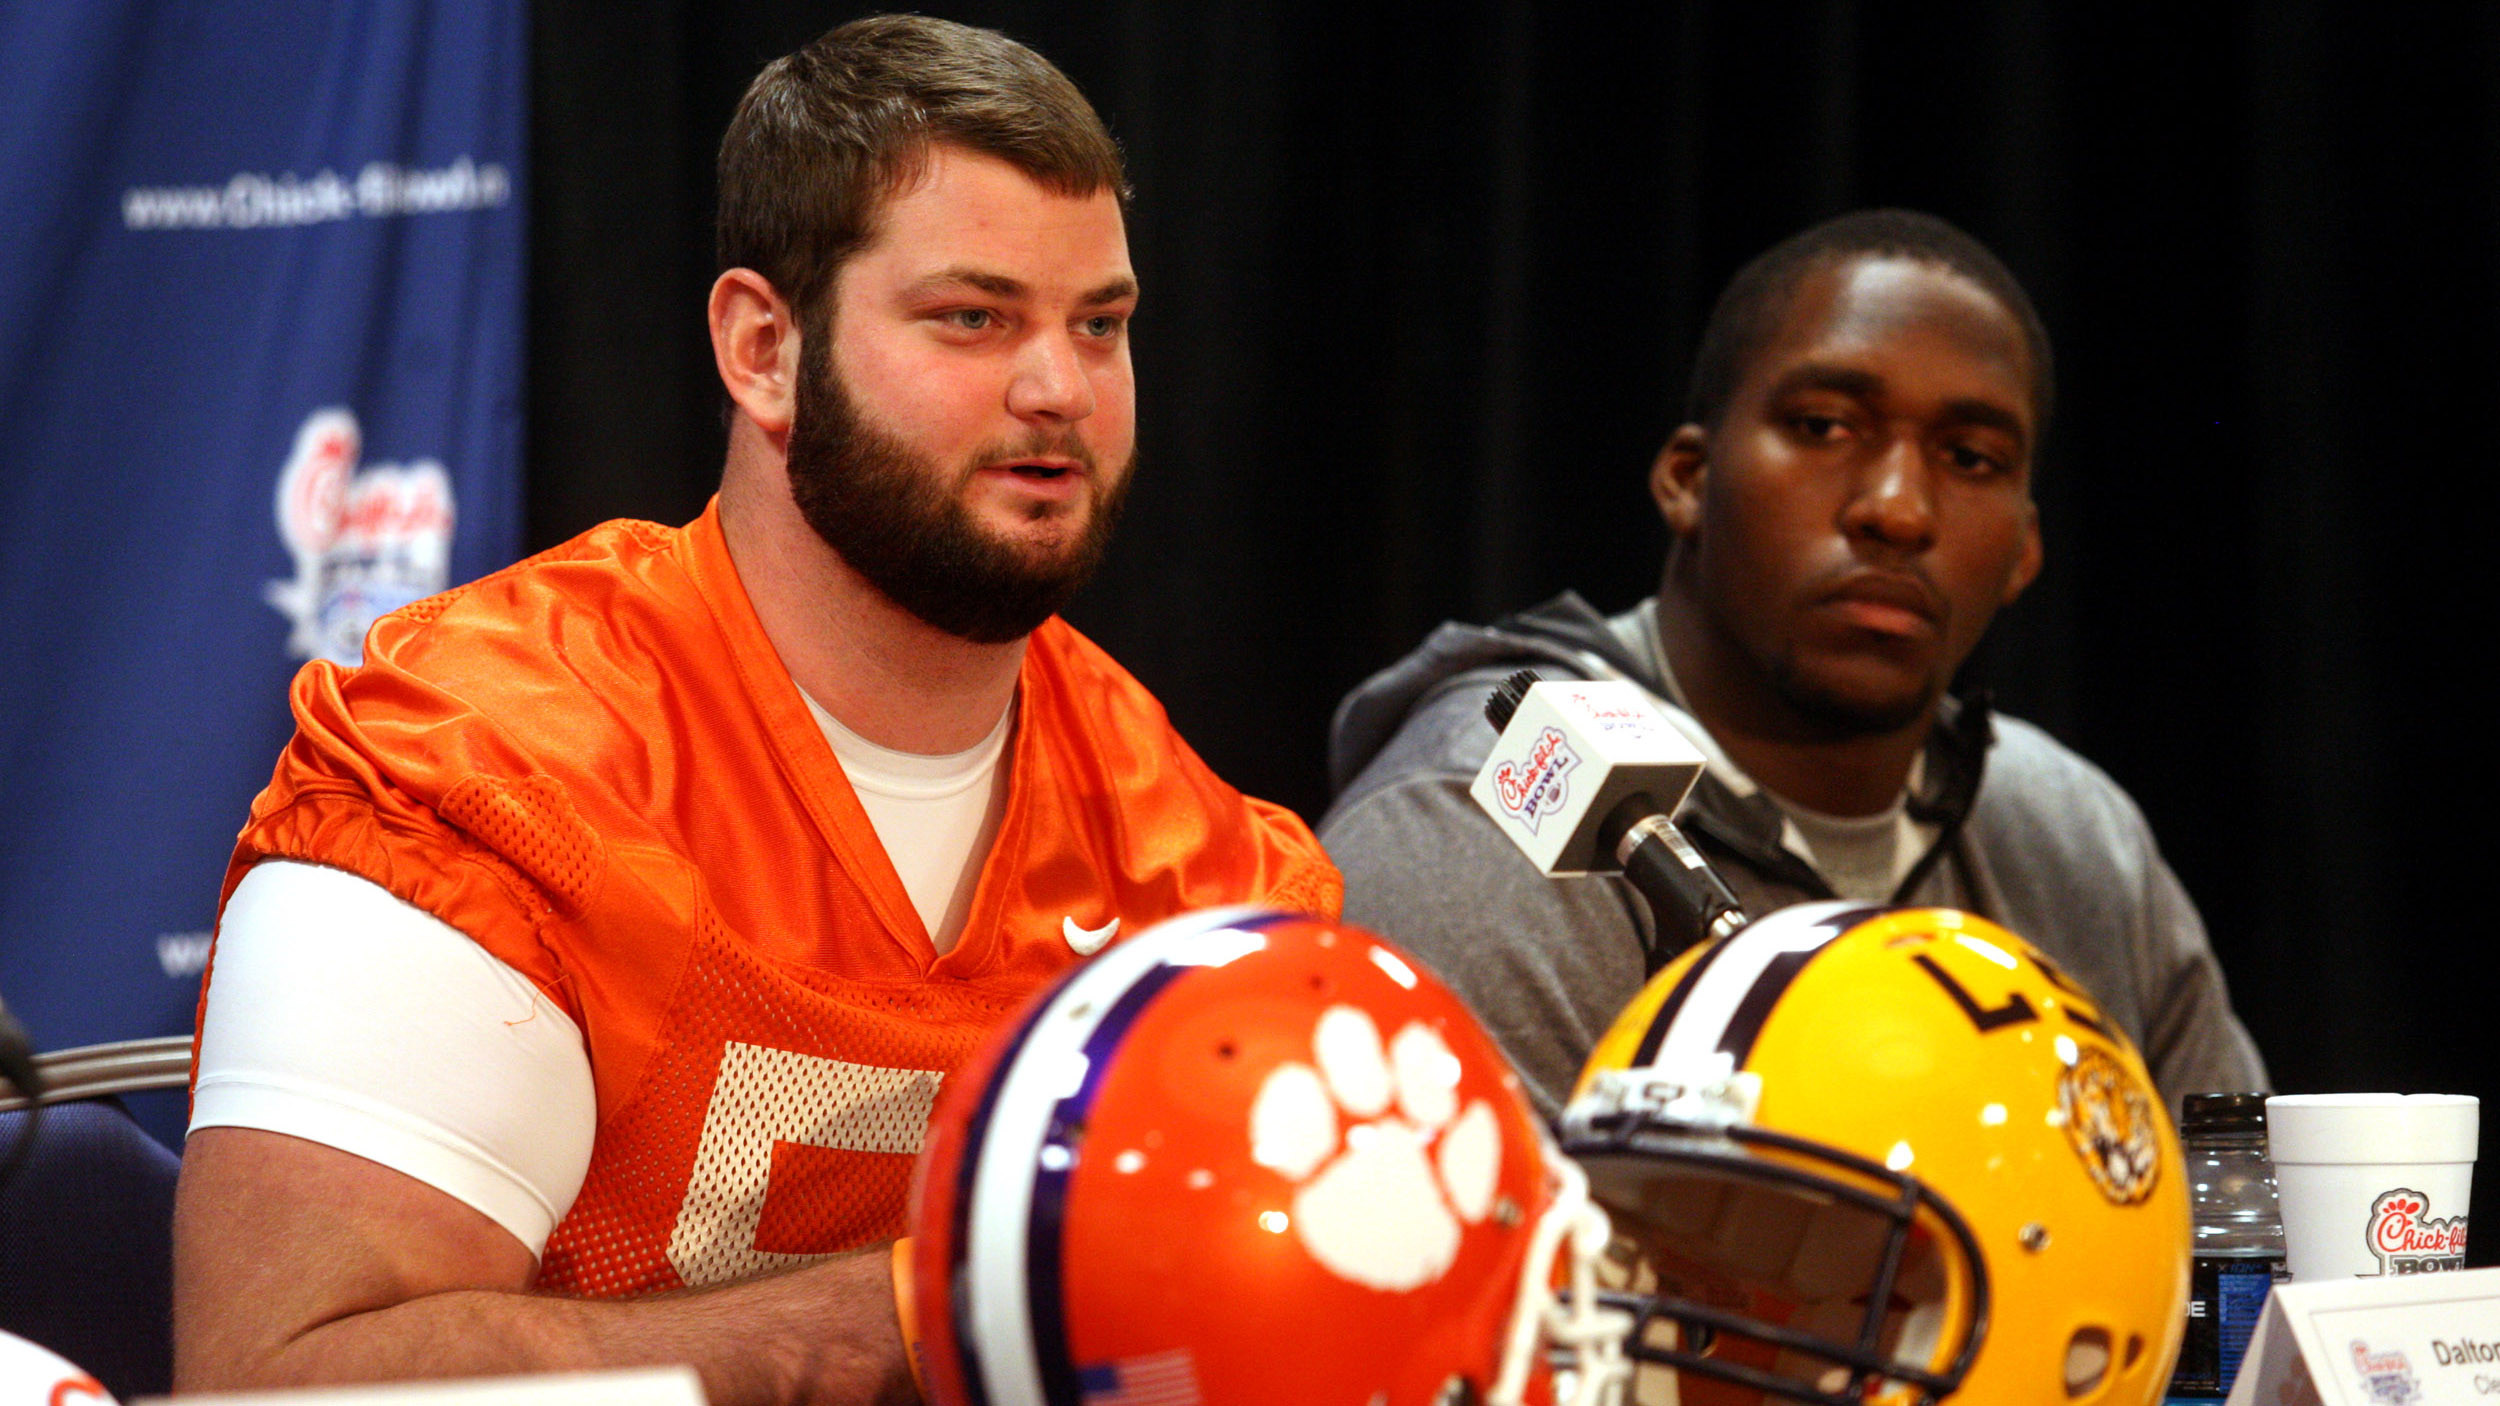 Clemson Football Bowl Press Conference & Practice Report: December 28